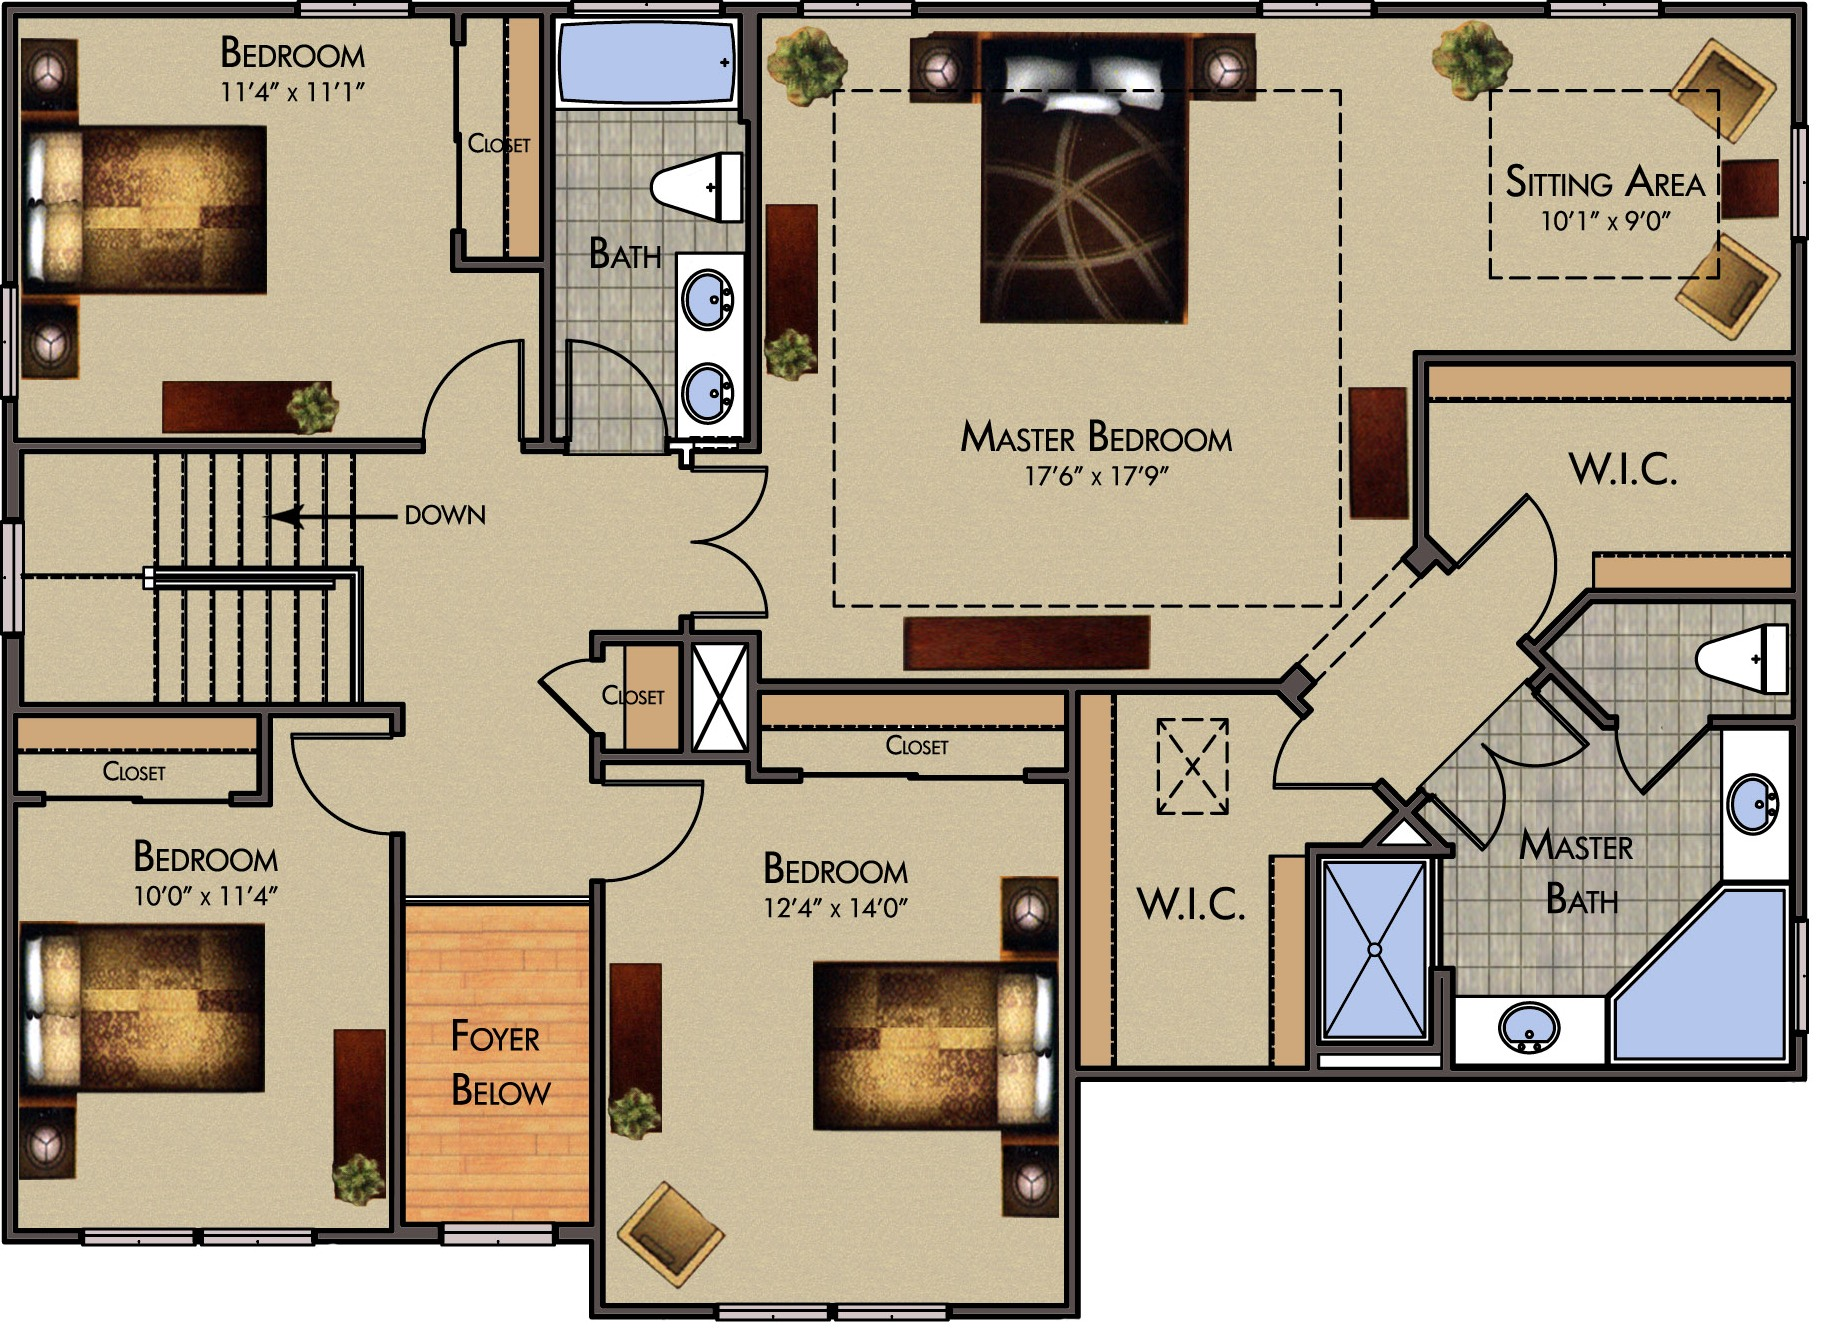 1st floor plan 2nd floor plan